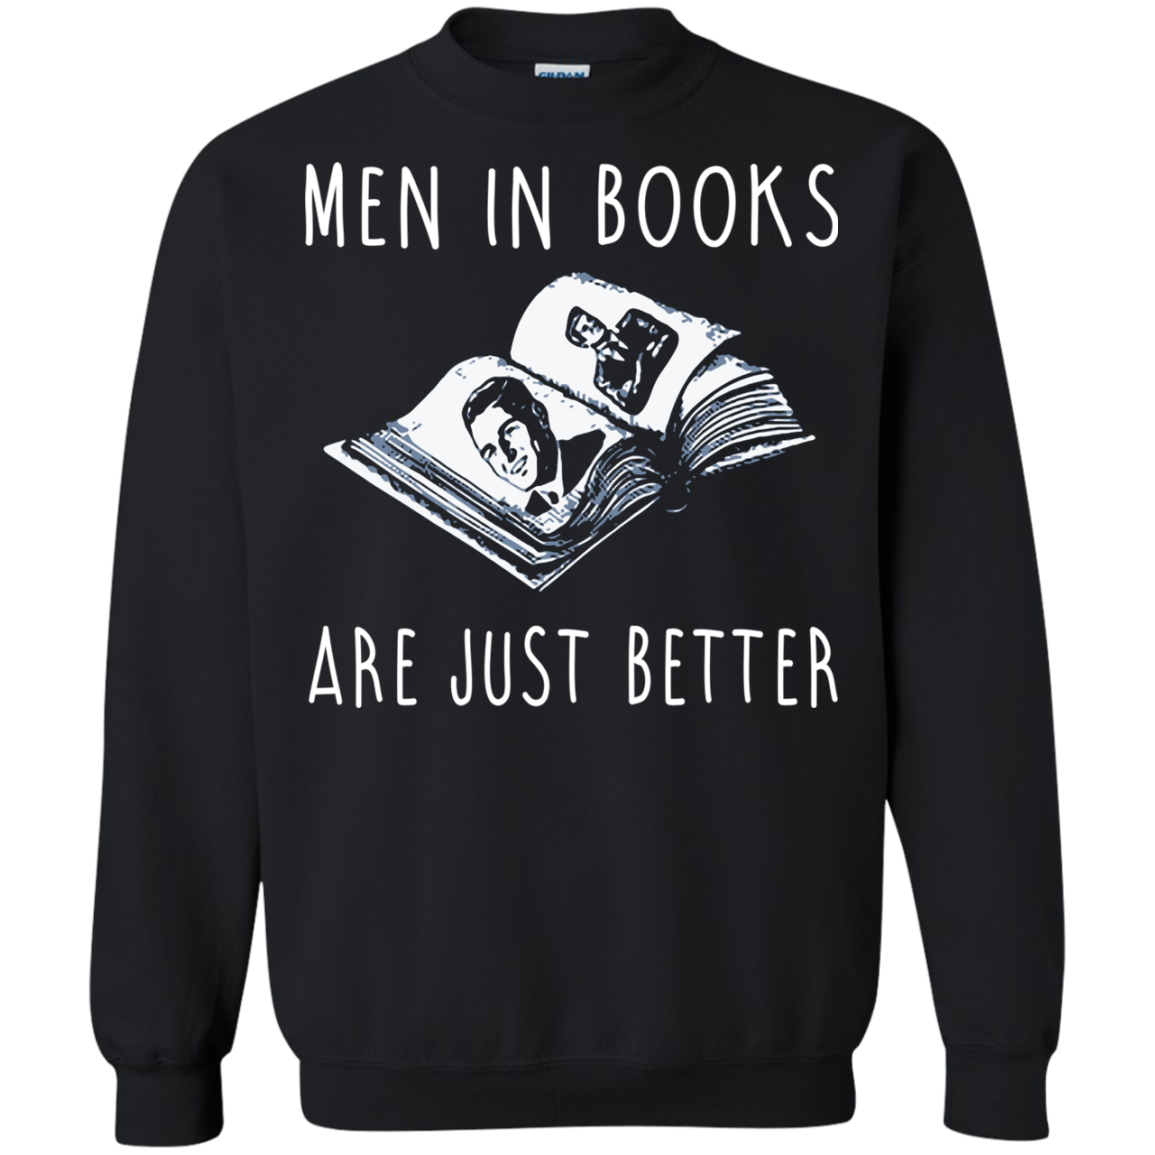 Book T shirts Men In Books Are Just Better Hoodies Sweatshirts TH